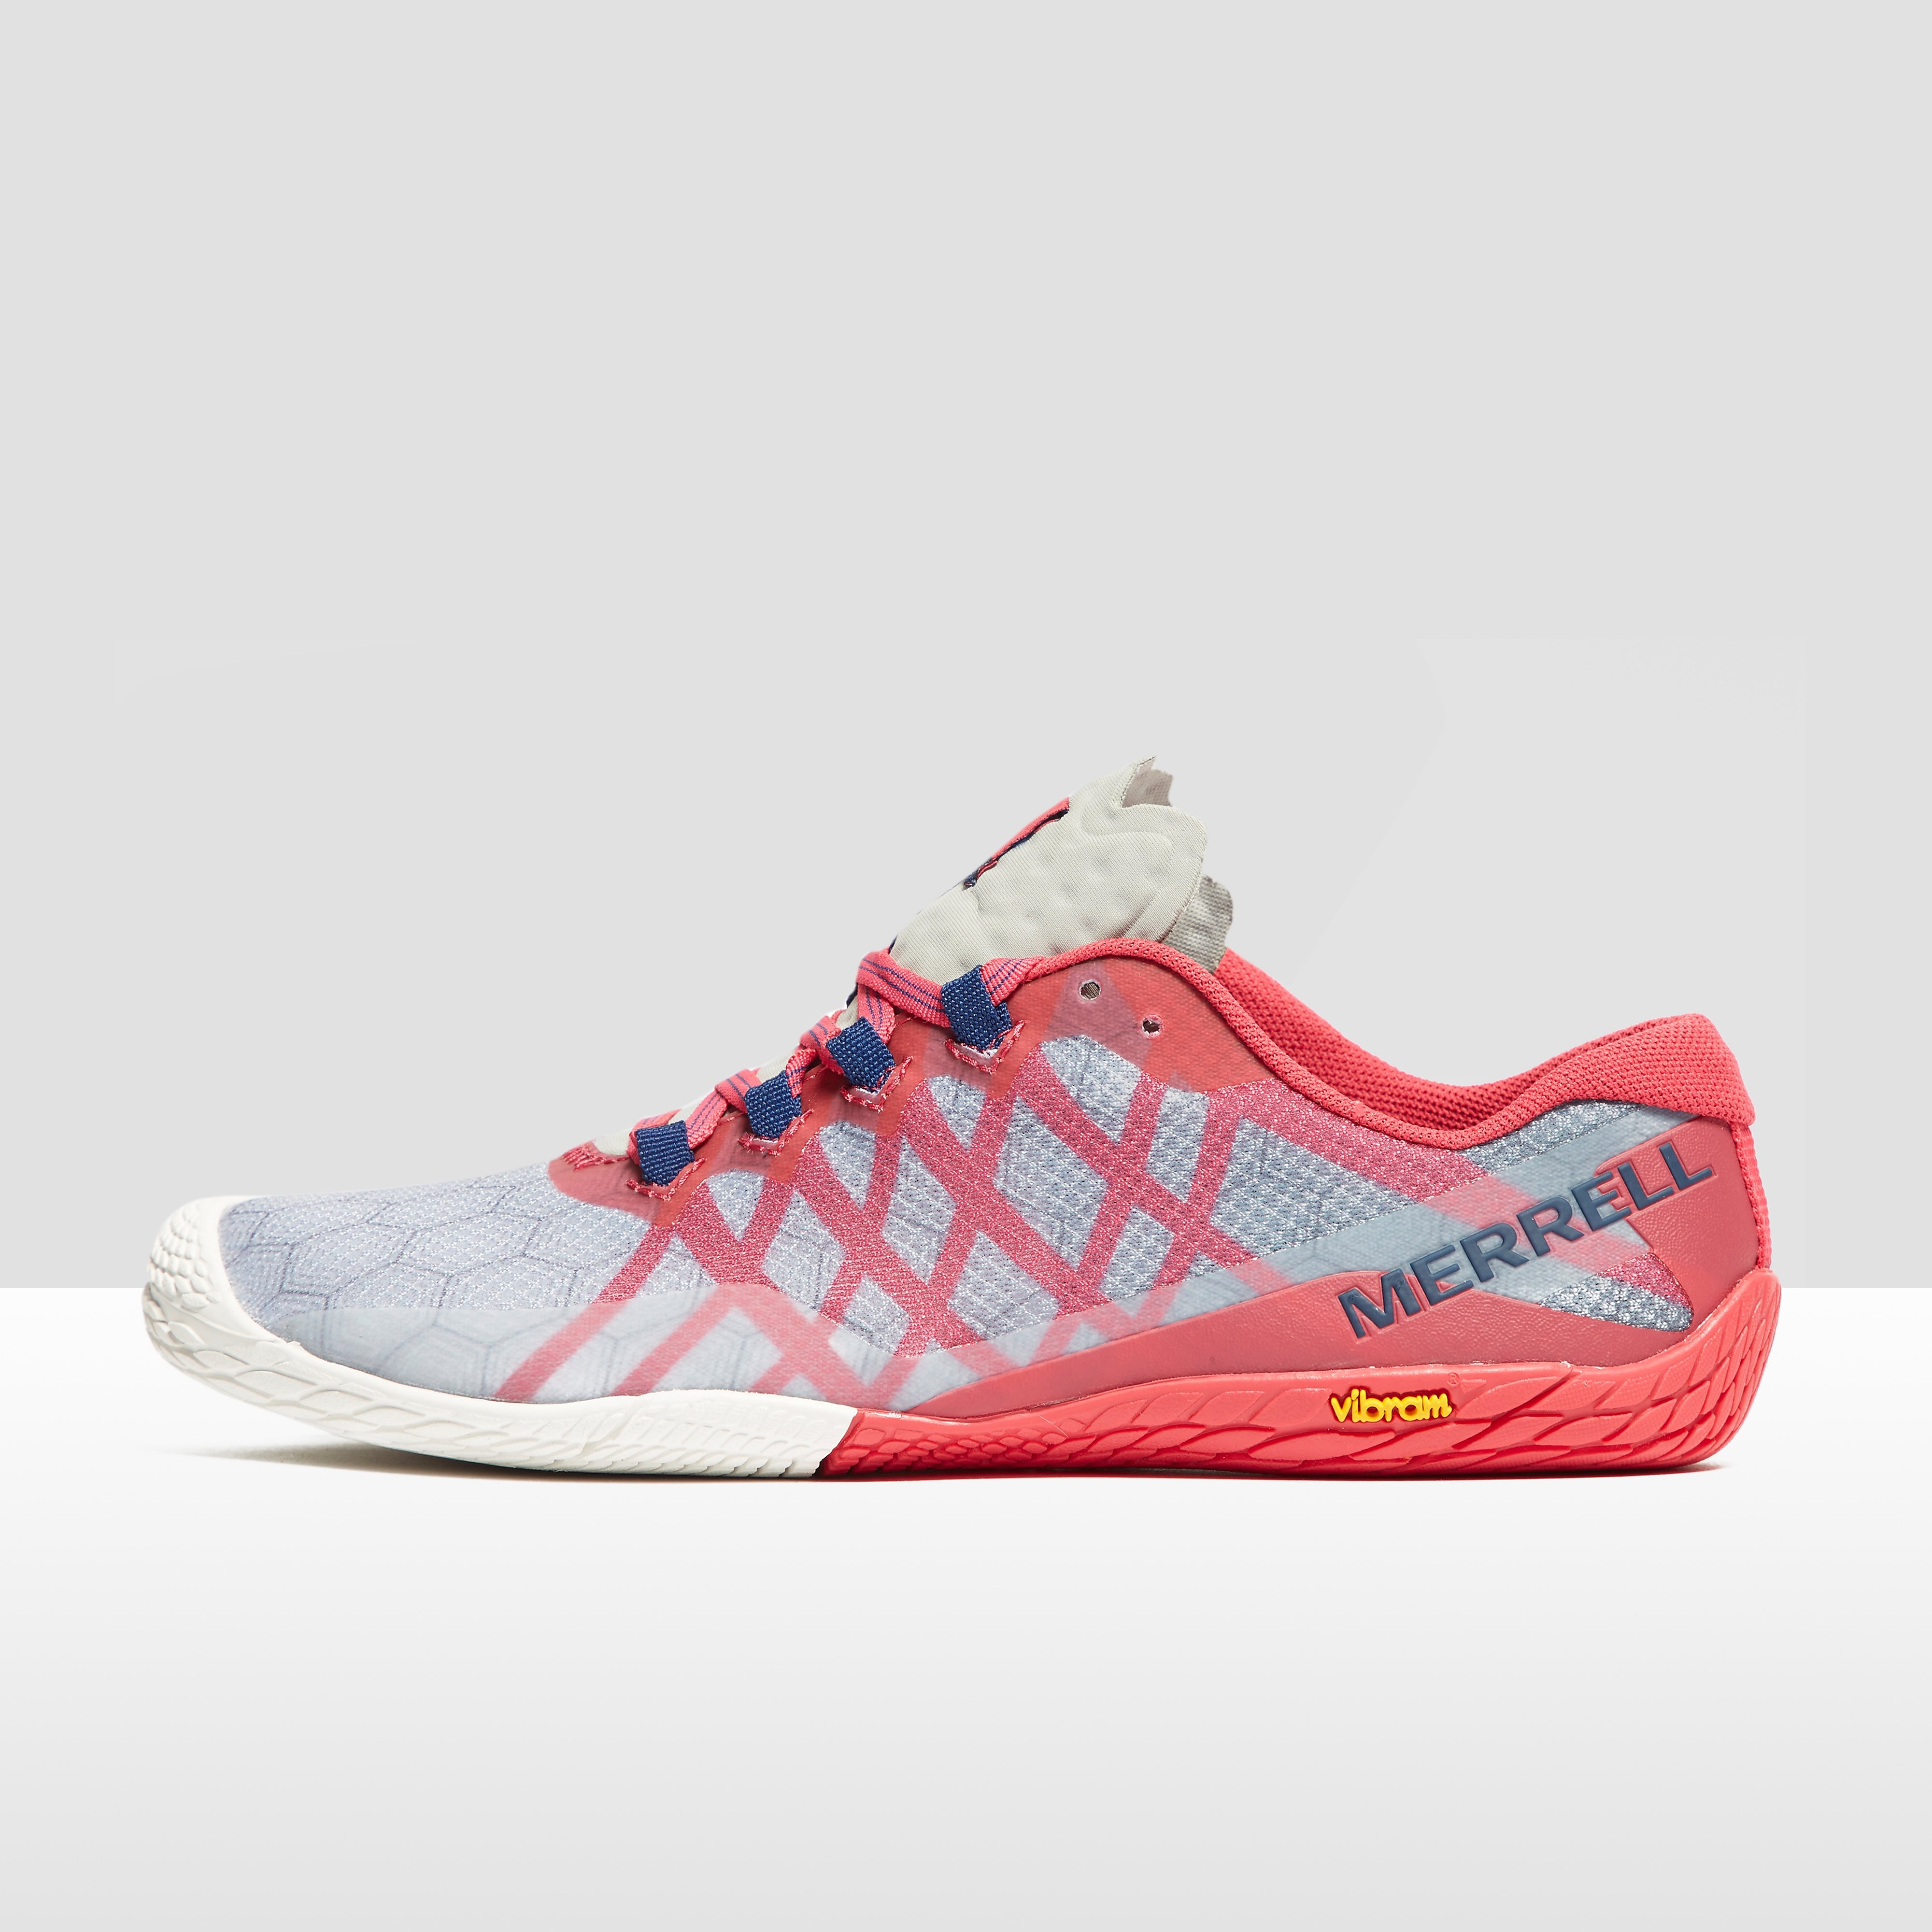 Merrell Vapour Glove 3 Women's Running Shoes